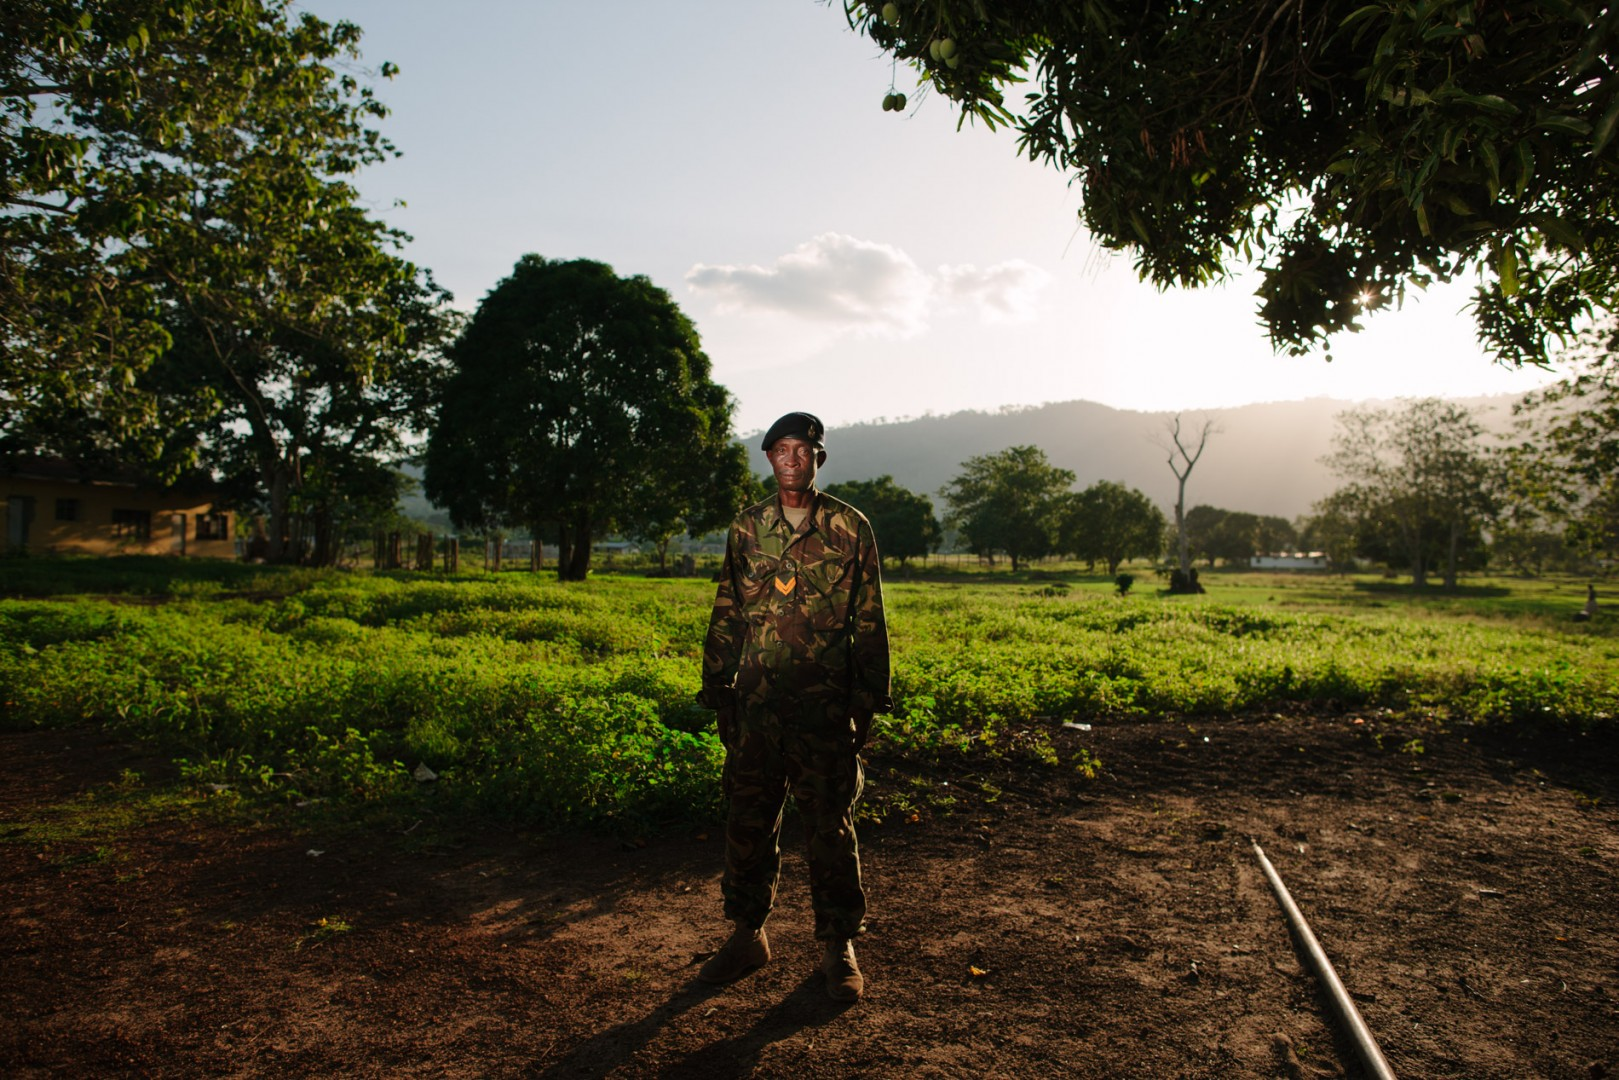 Cpl Sidie Vandi. The 2nd Infantry are neighbours to the location of the new Swawou School.